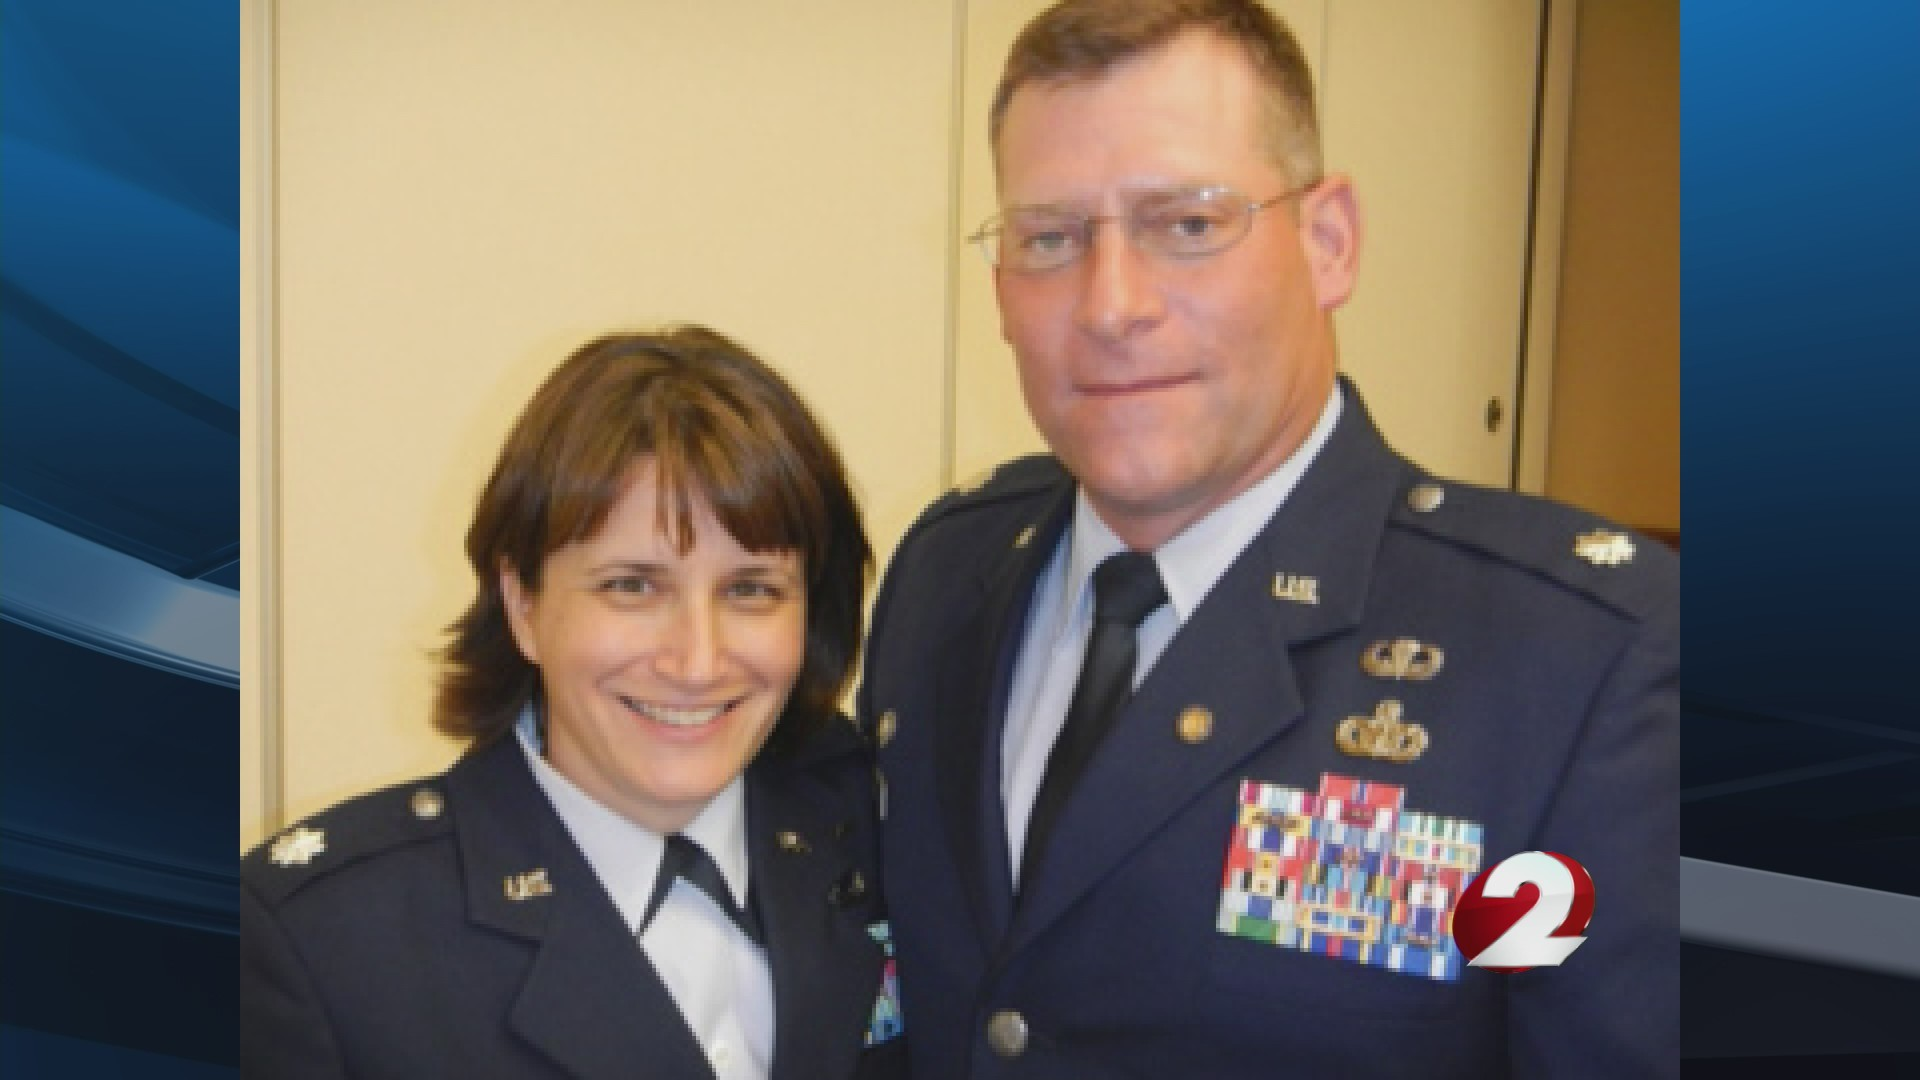 Married military couple to be honored at Thursday's Dragons game